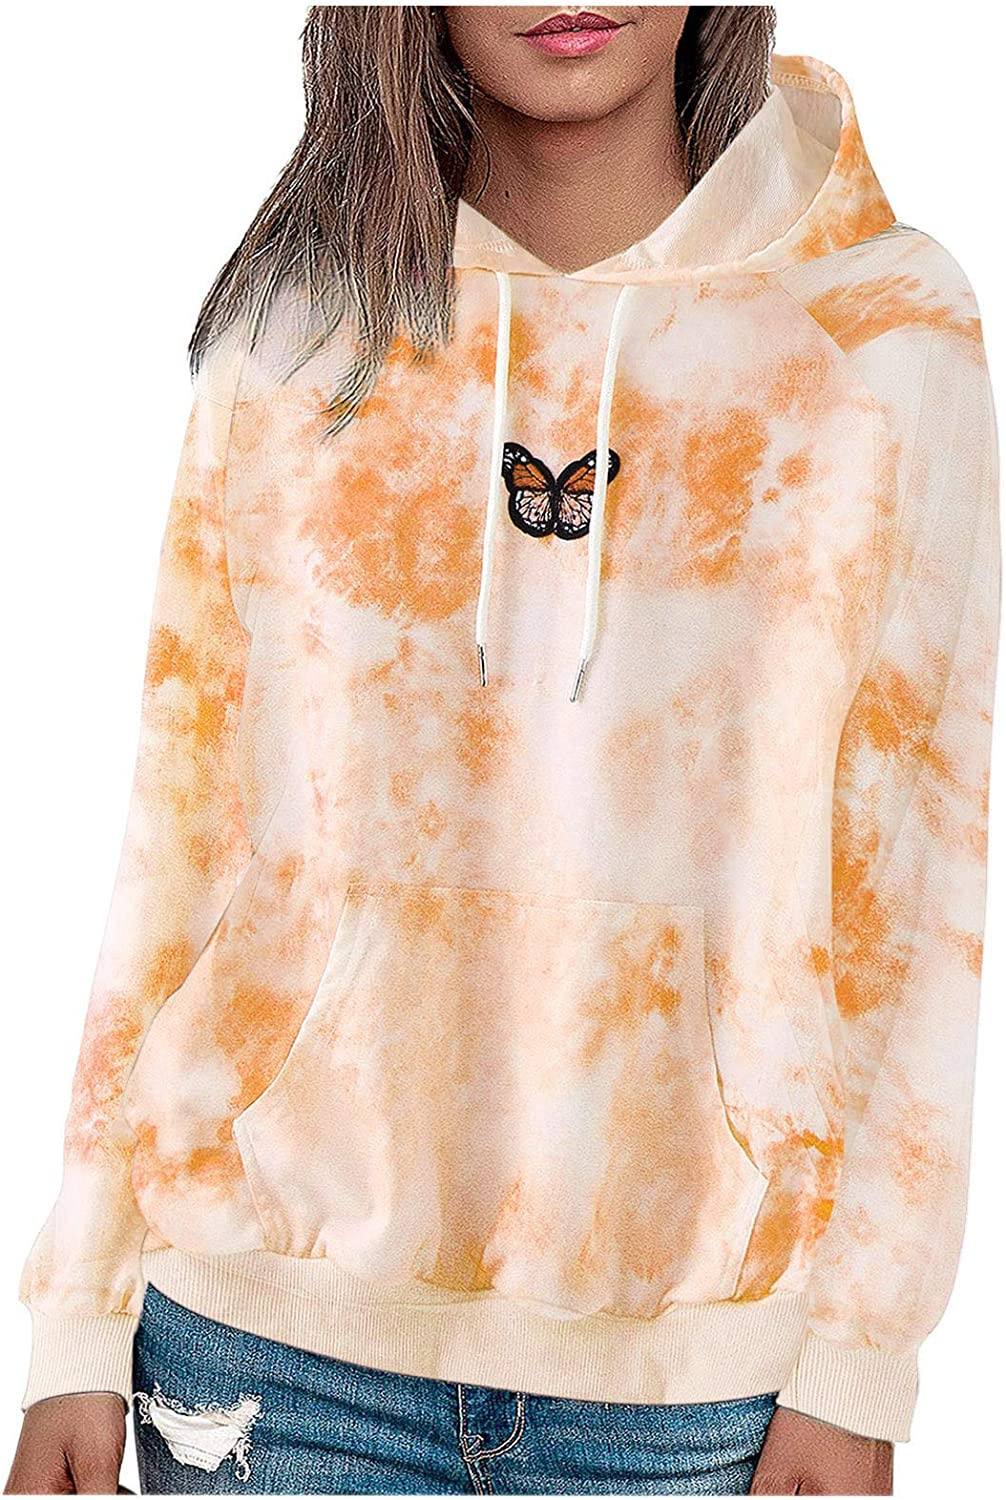 Jaqqra Hoodies for Women Plus Size Pullover Butterfly Print Long Sleeve Drawstring Hoodie Tops Oversized Sweatshirts